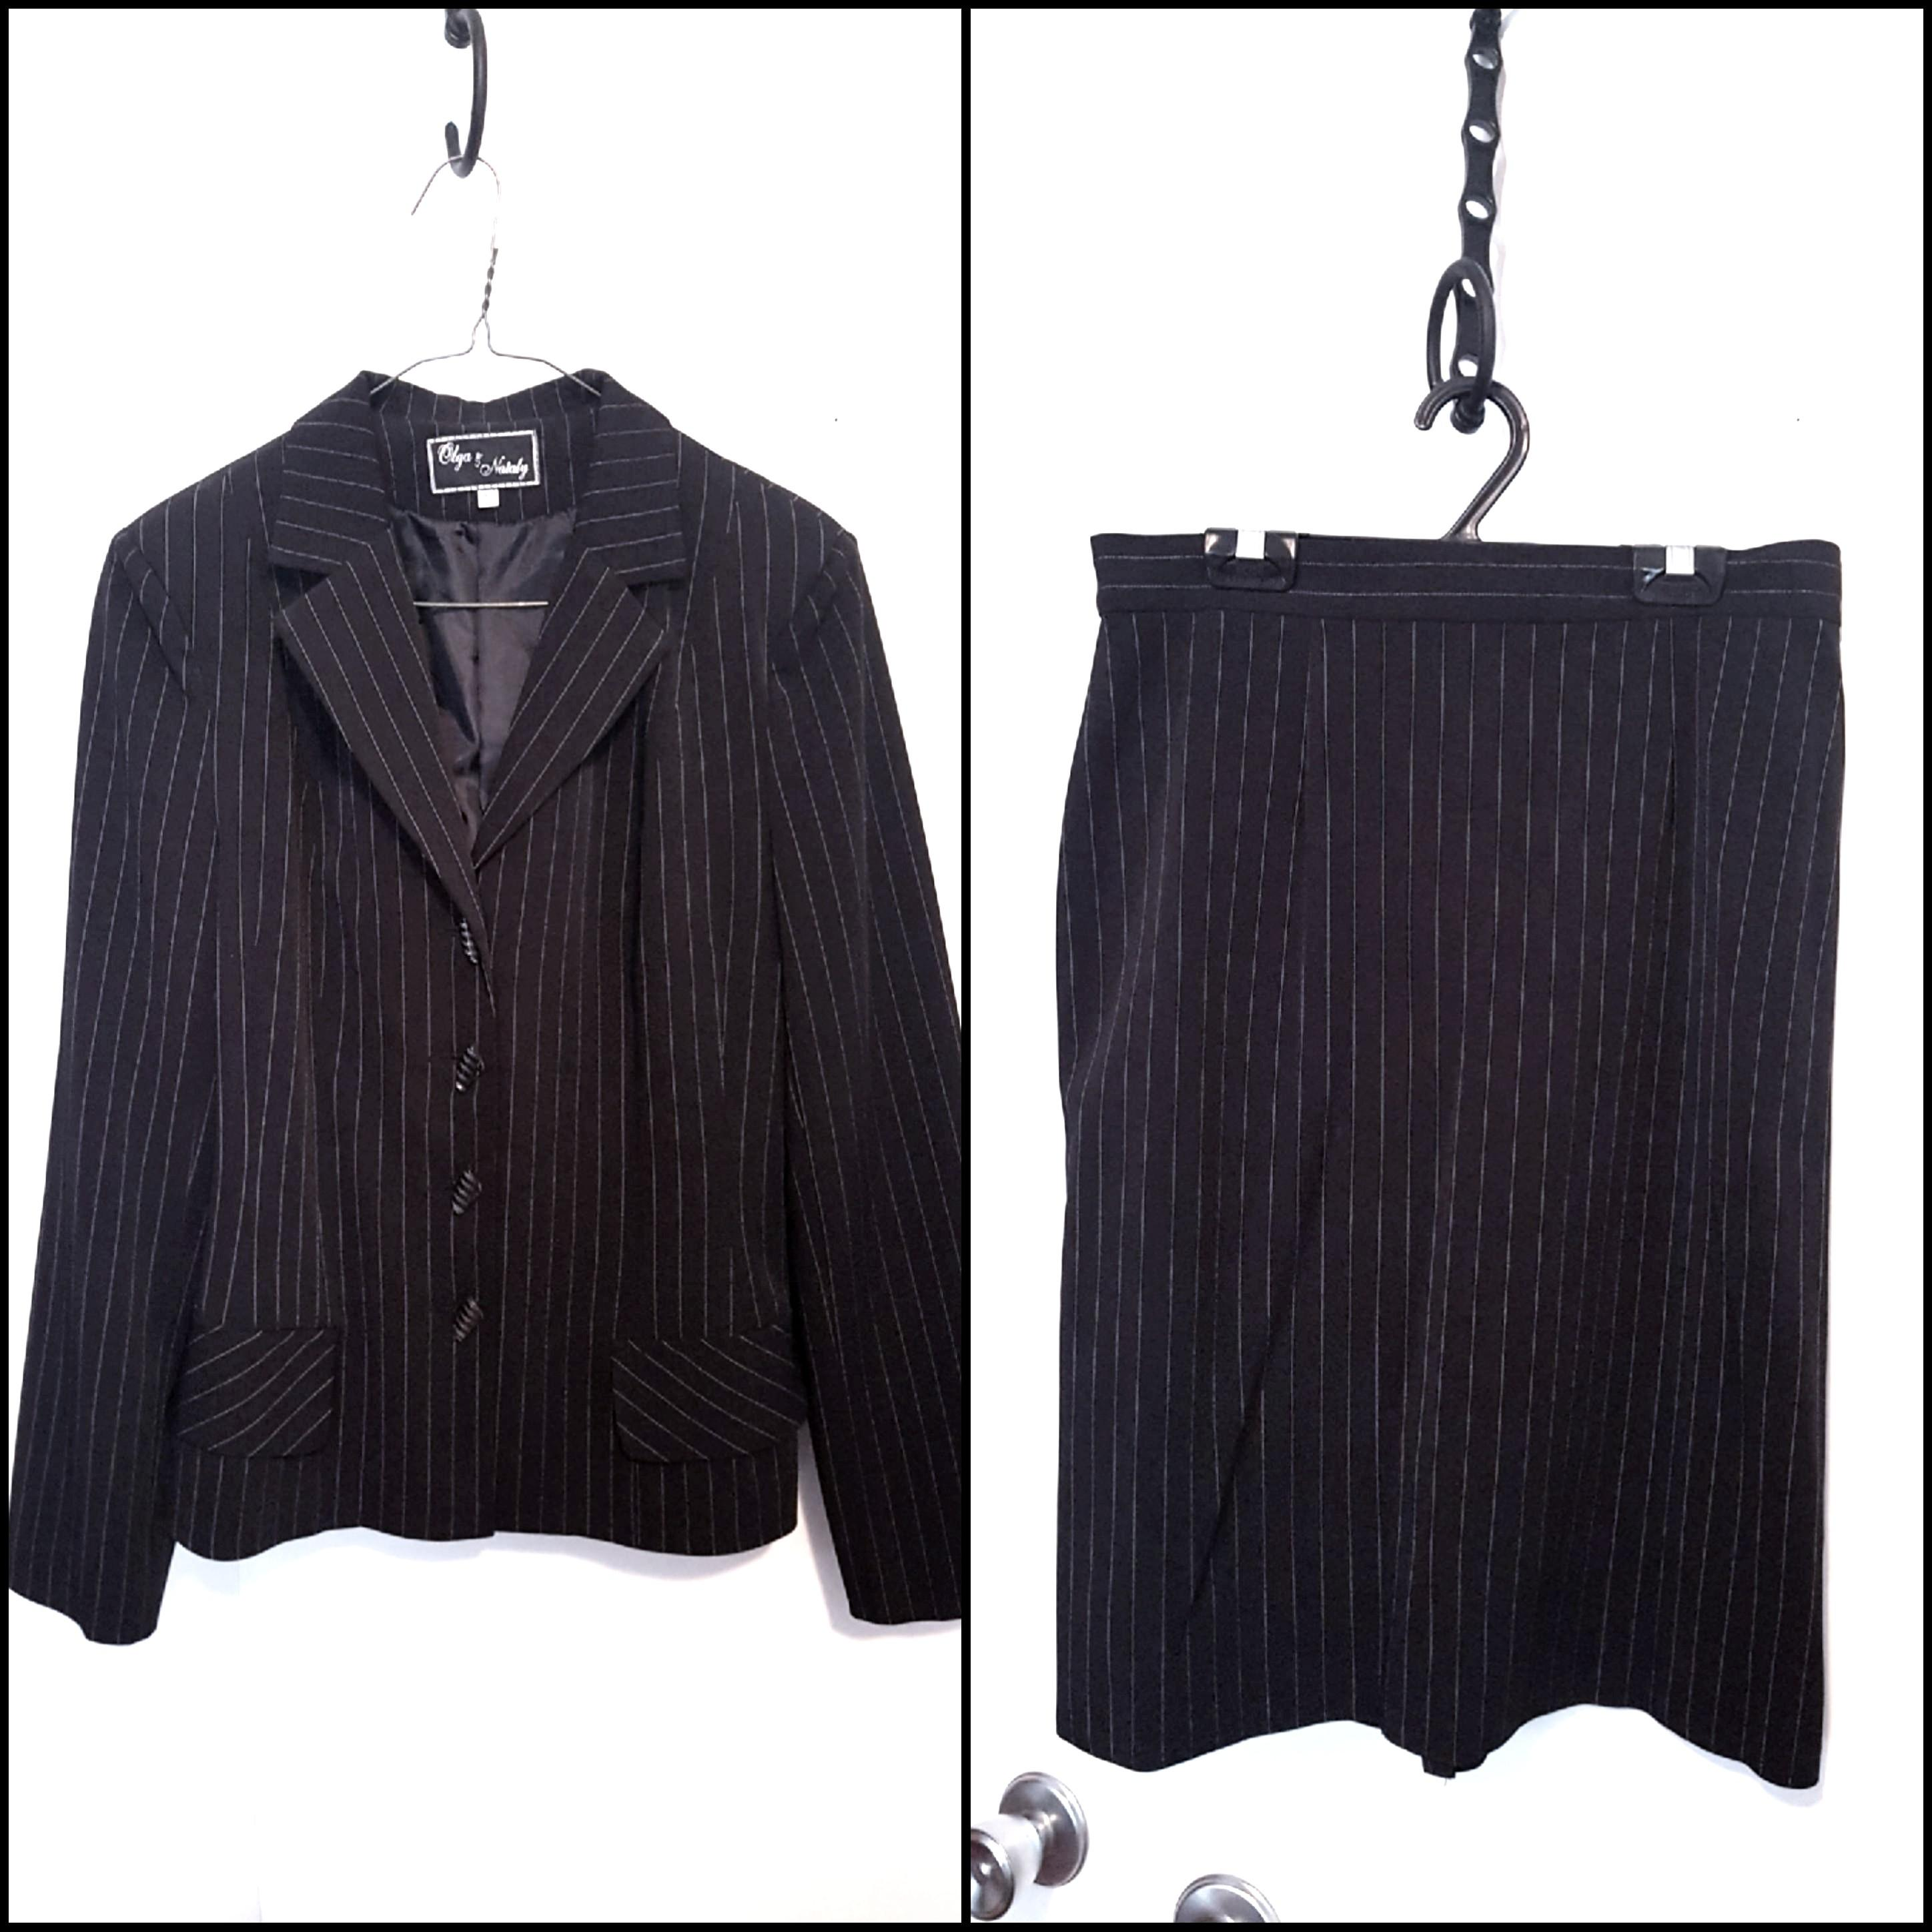 Pinstriped skirt suit